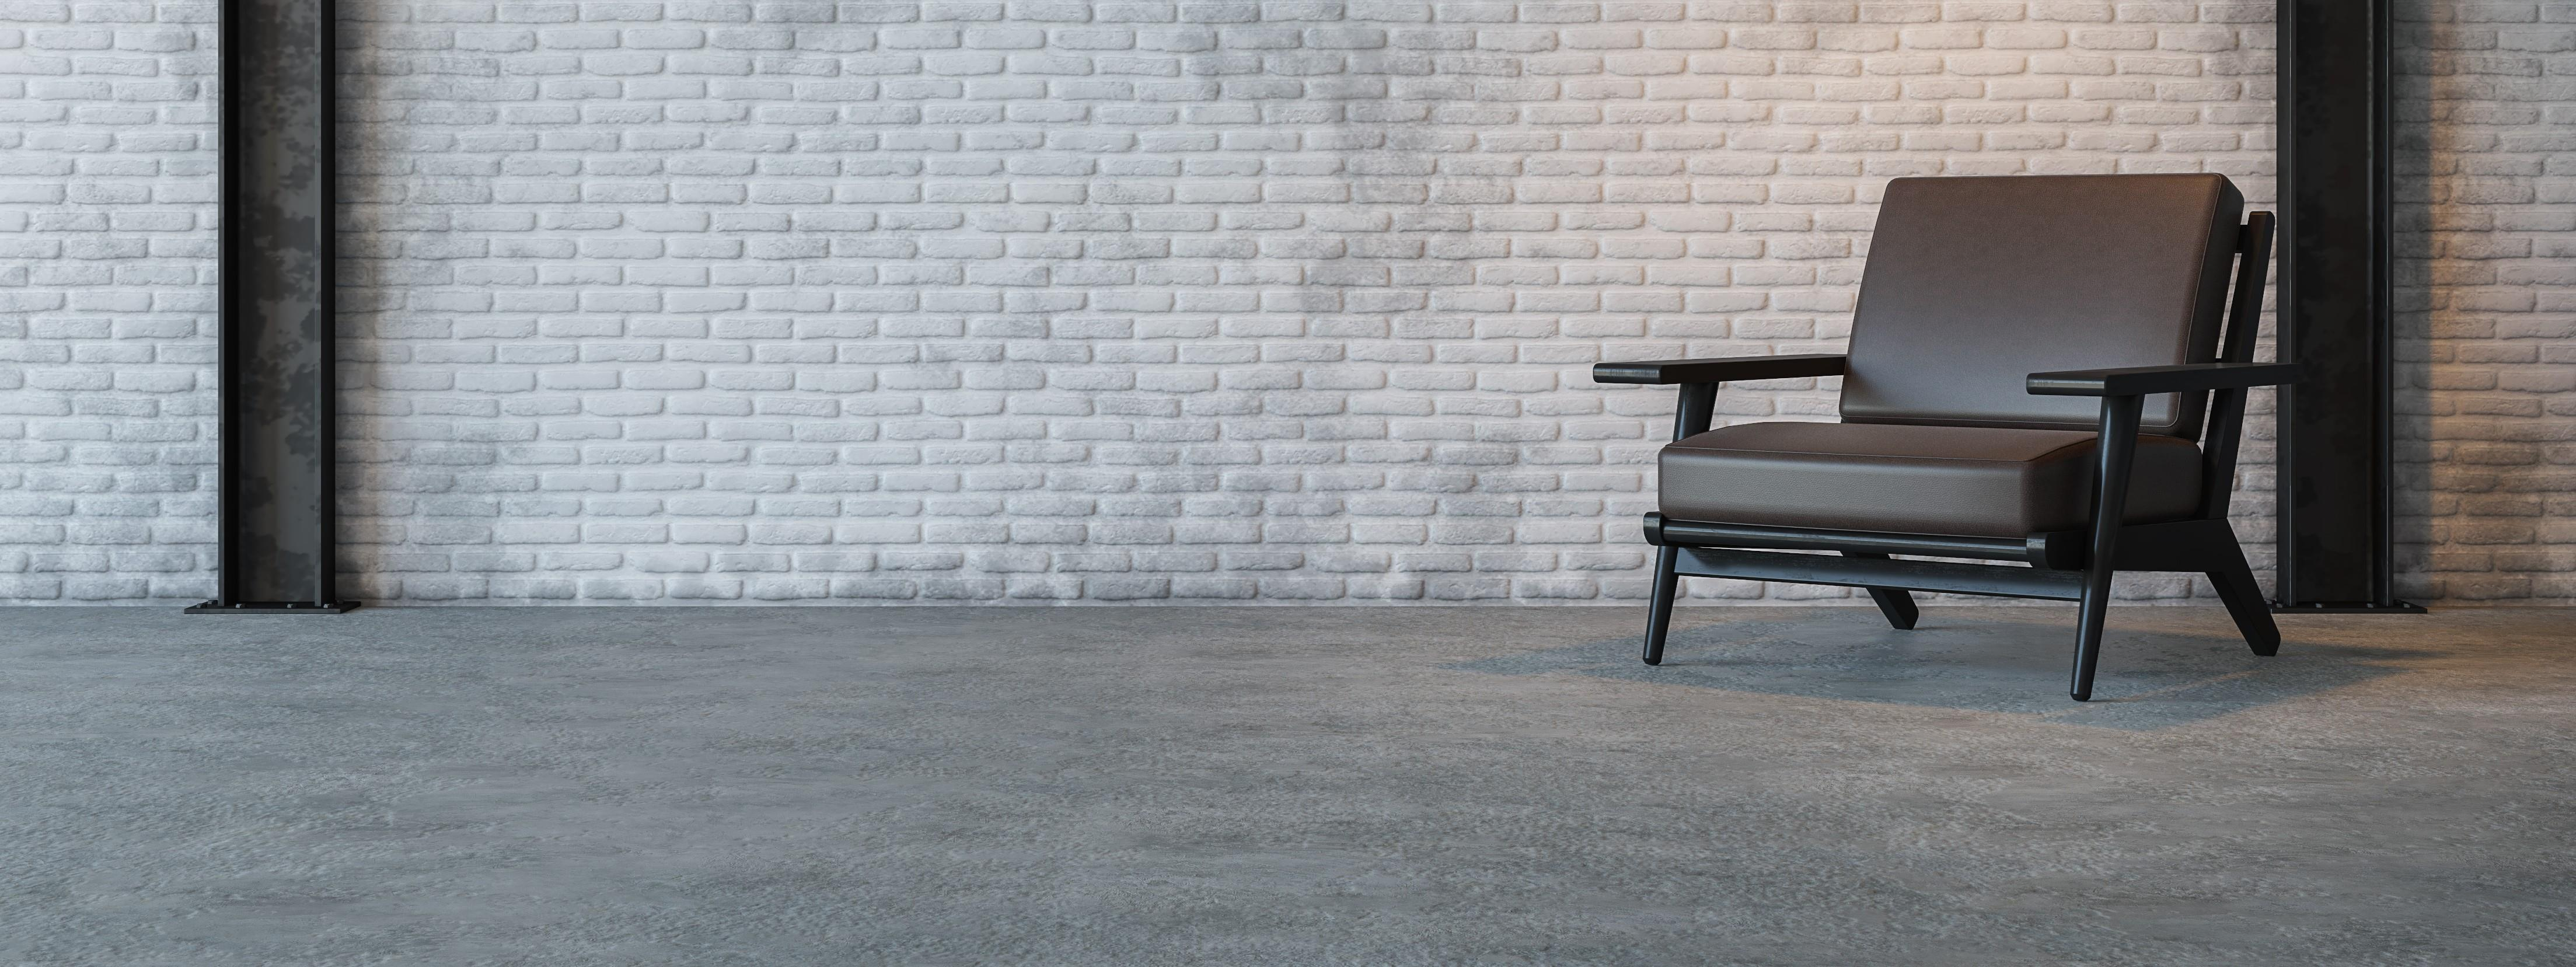 chair-in-grey-room